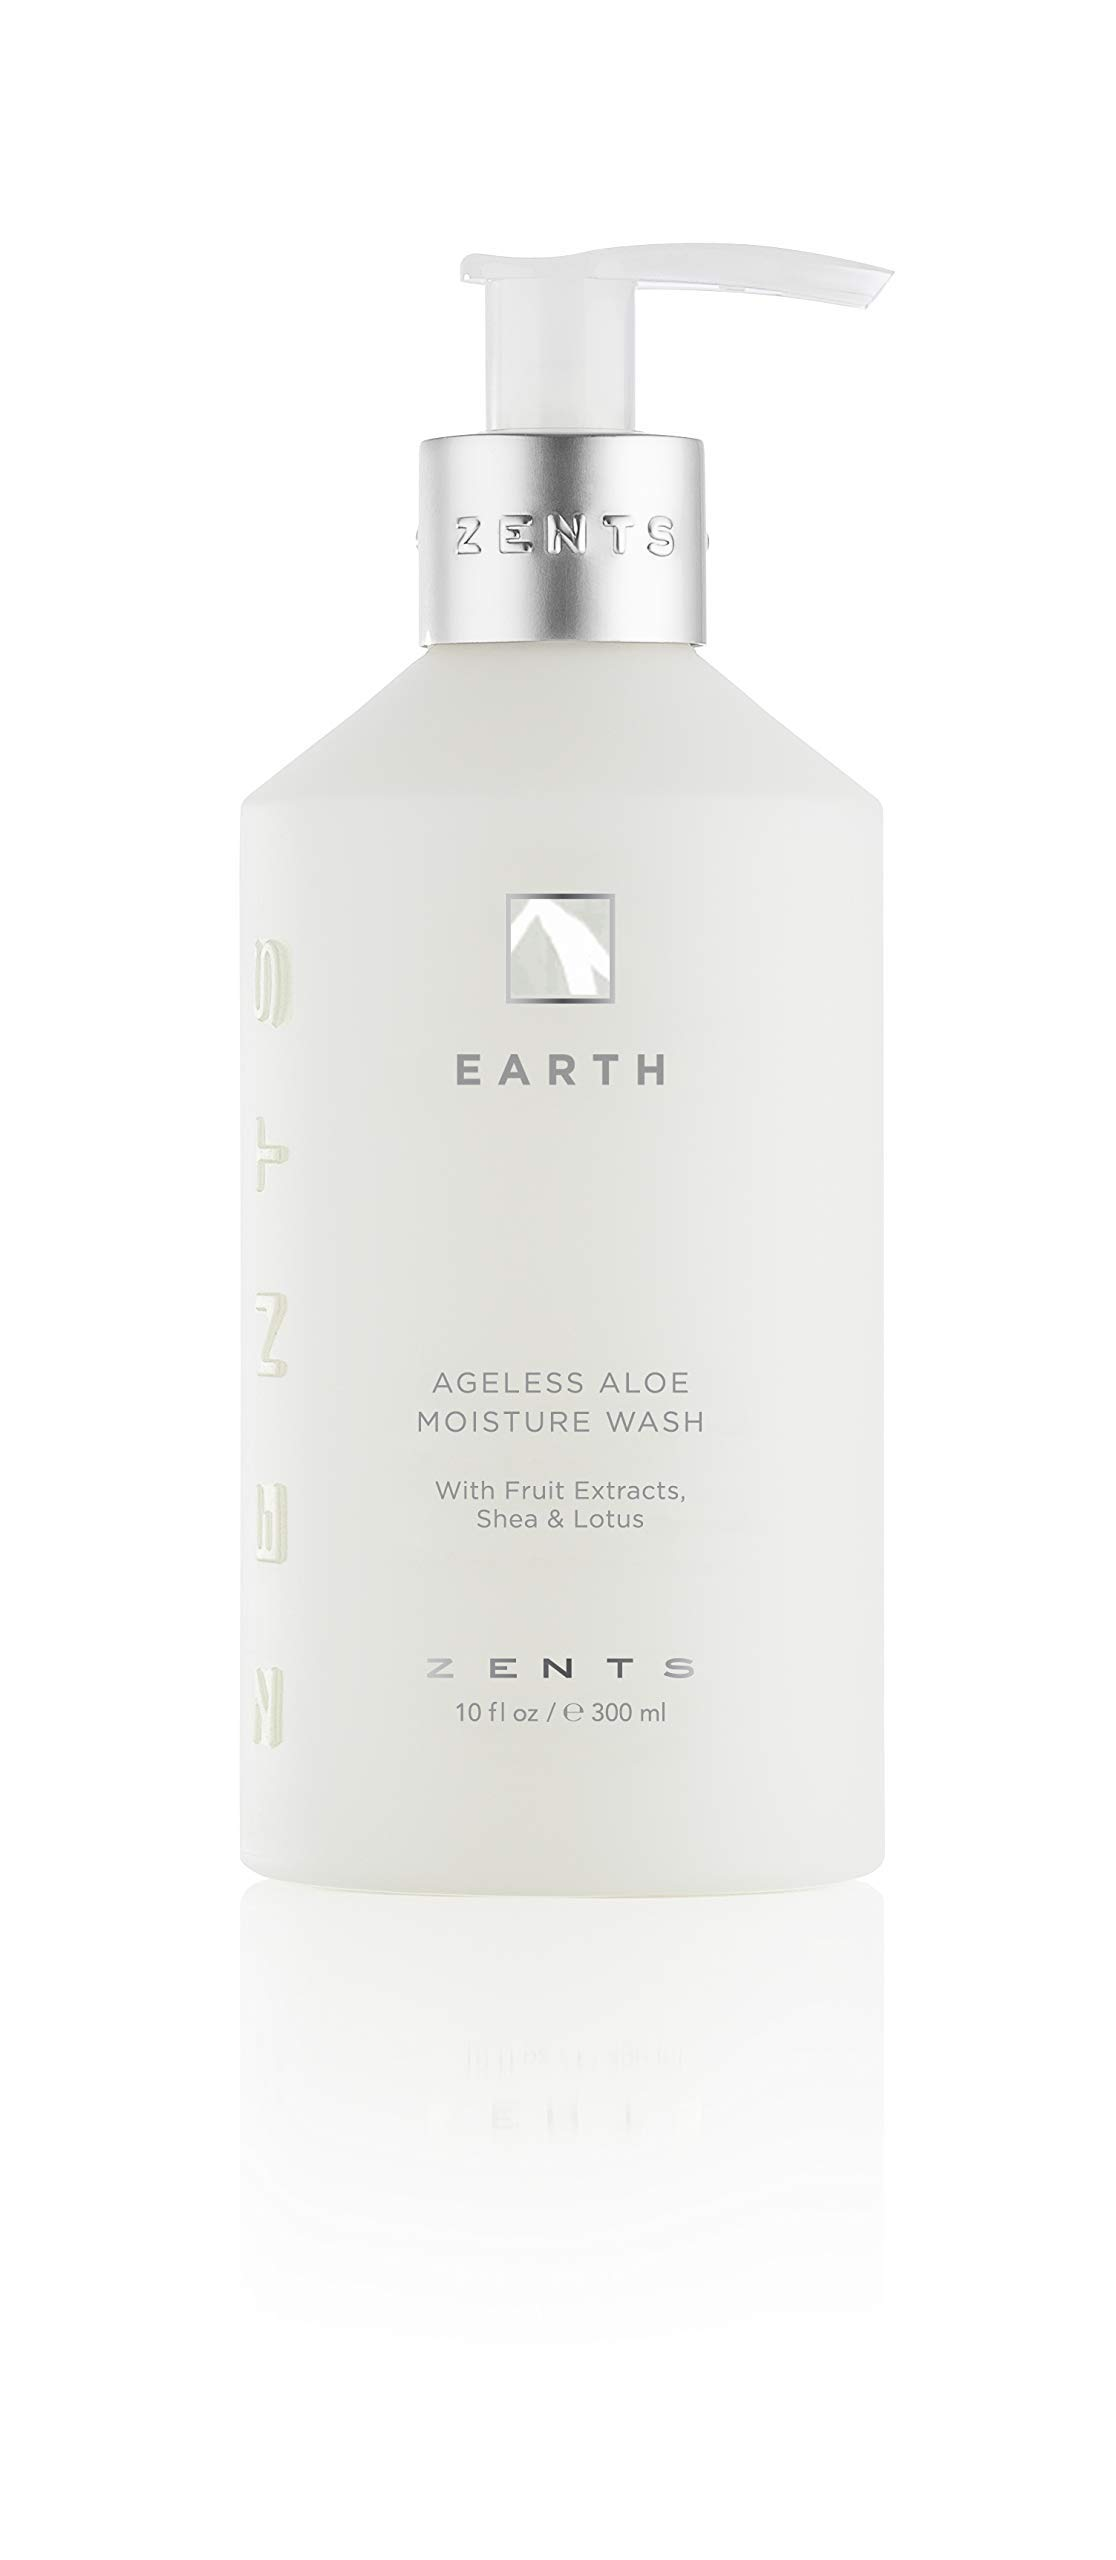 Zents Ageless Aloe Moisture Body and Hand Wash, Cleanse and Nourish Dry Skin with Shea Butter and Organic Aloe 10 fl oz / 300 ml (Earth)